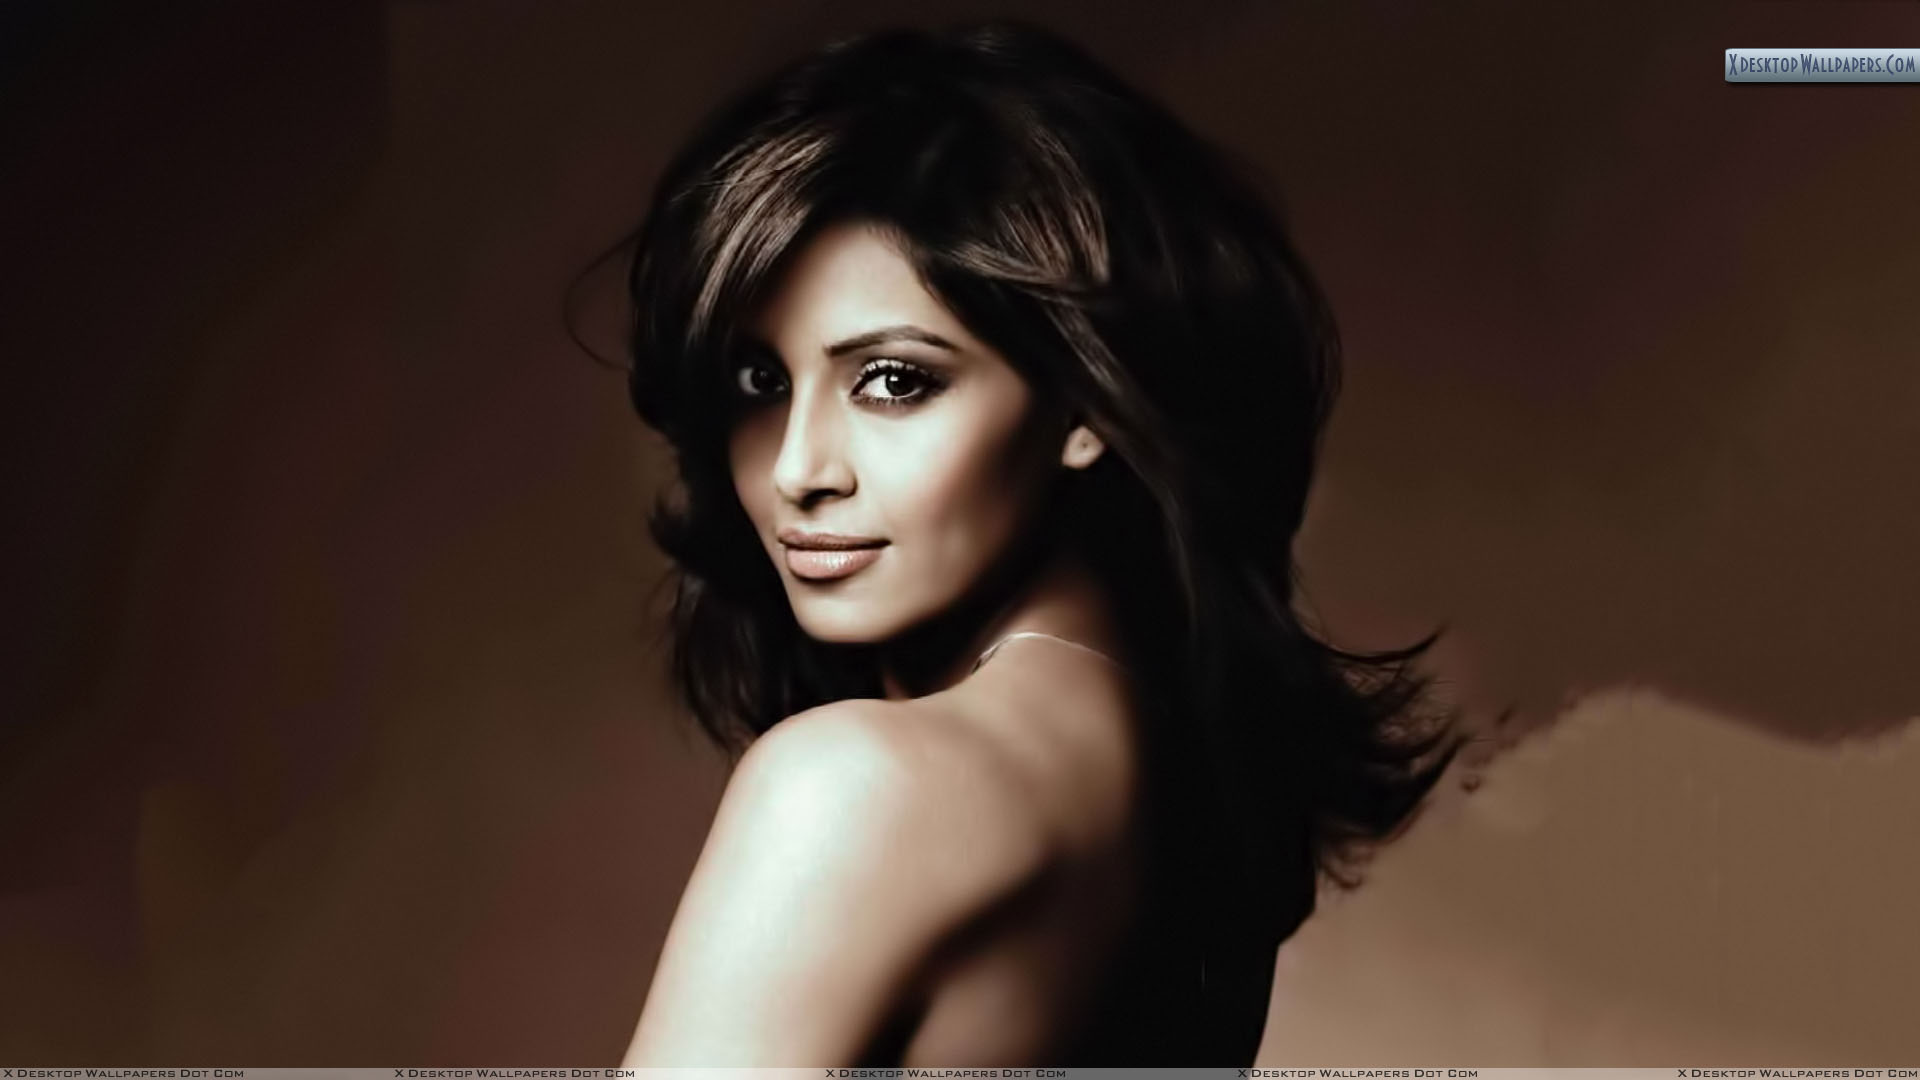 bipasha basu looking back photoshoot wallpaper